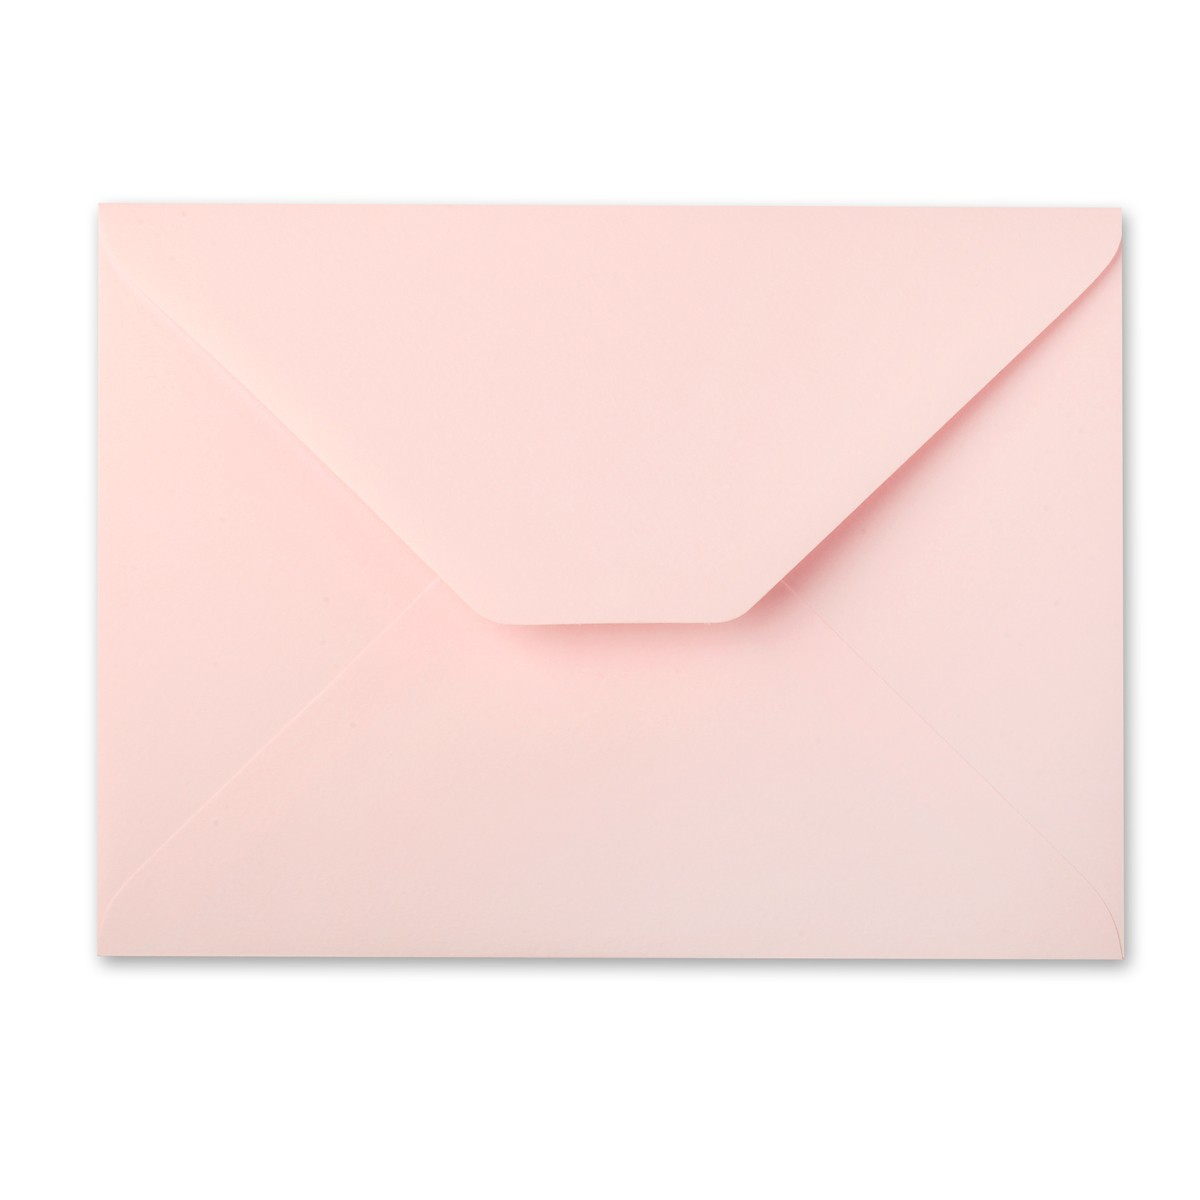 Image result for pink envelopes